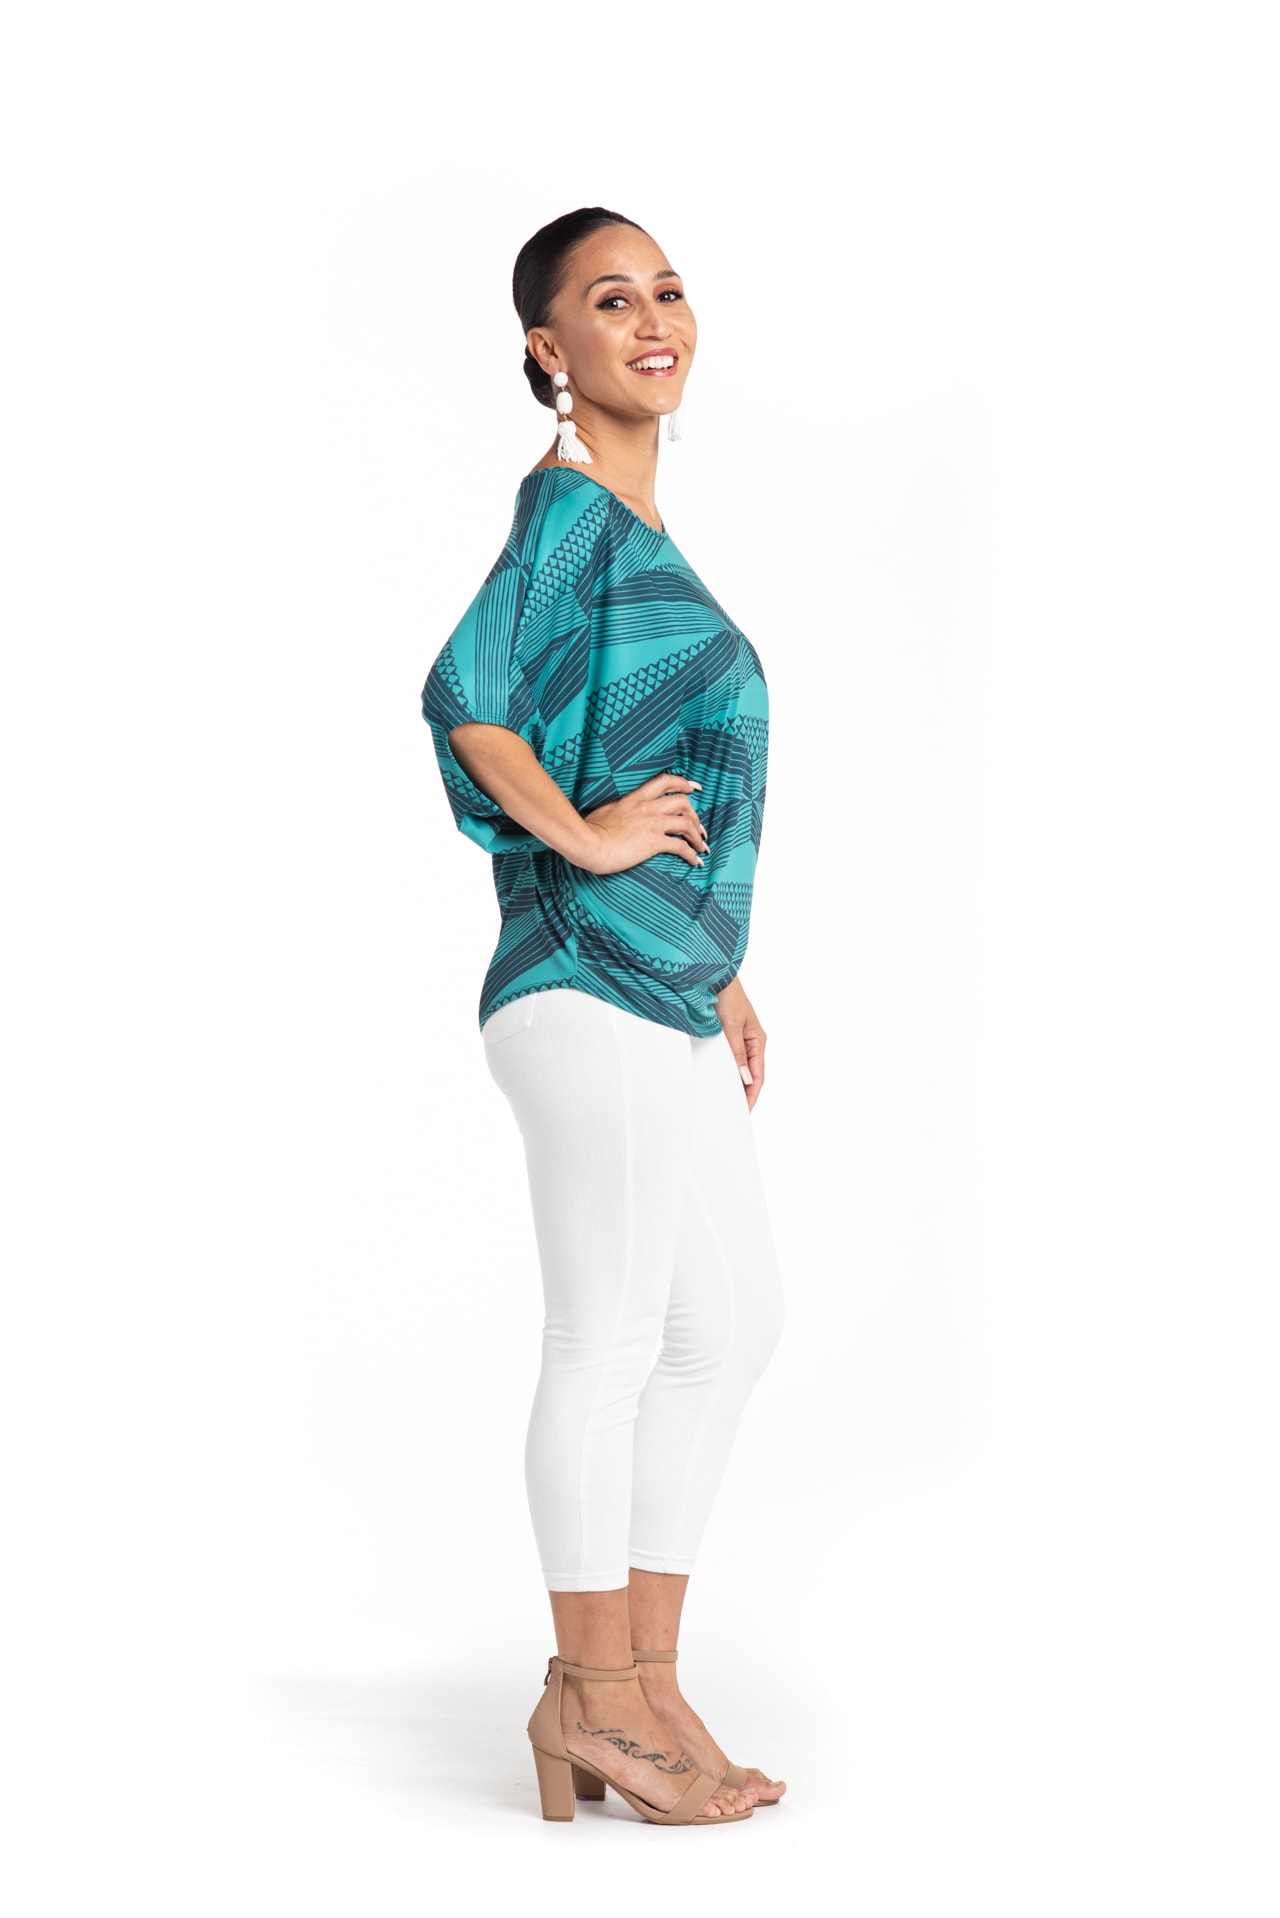 Model wearing Mahalo Nui Shirt in Blue - Side View